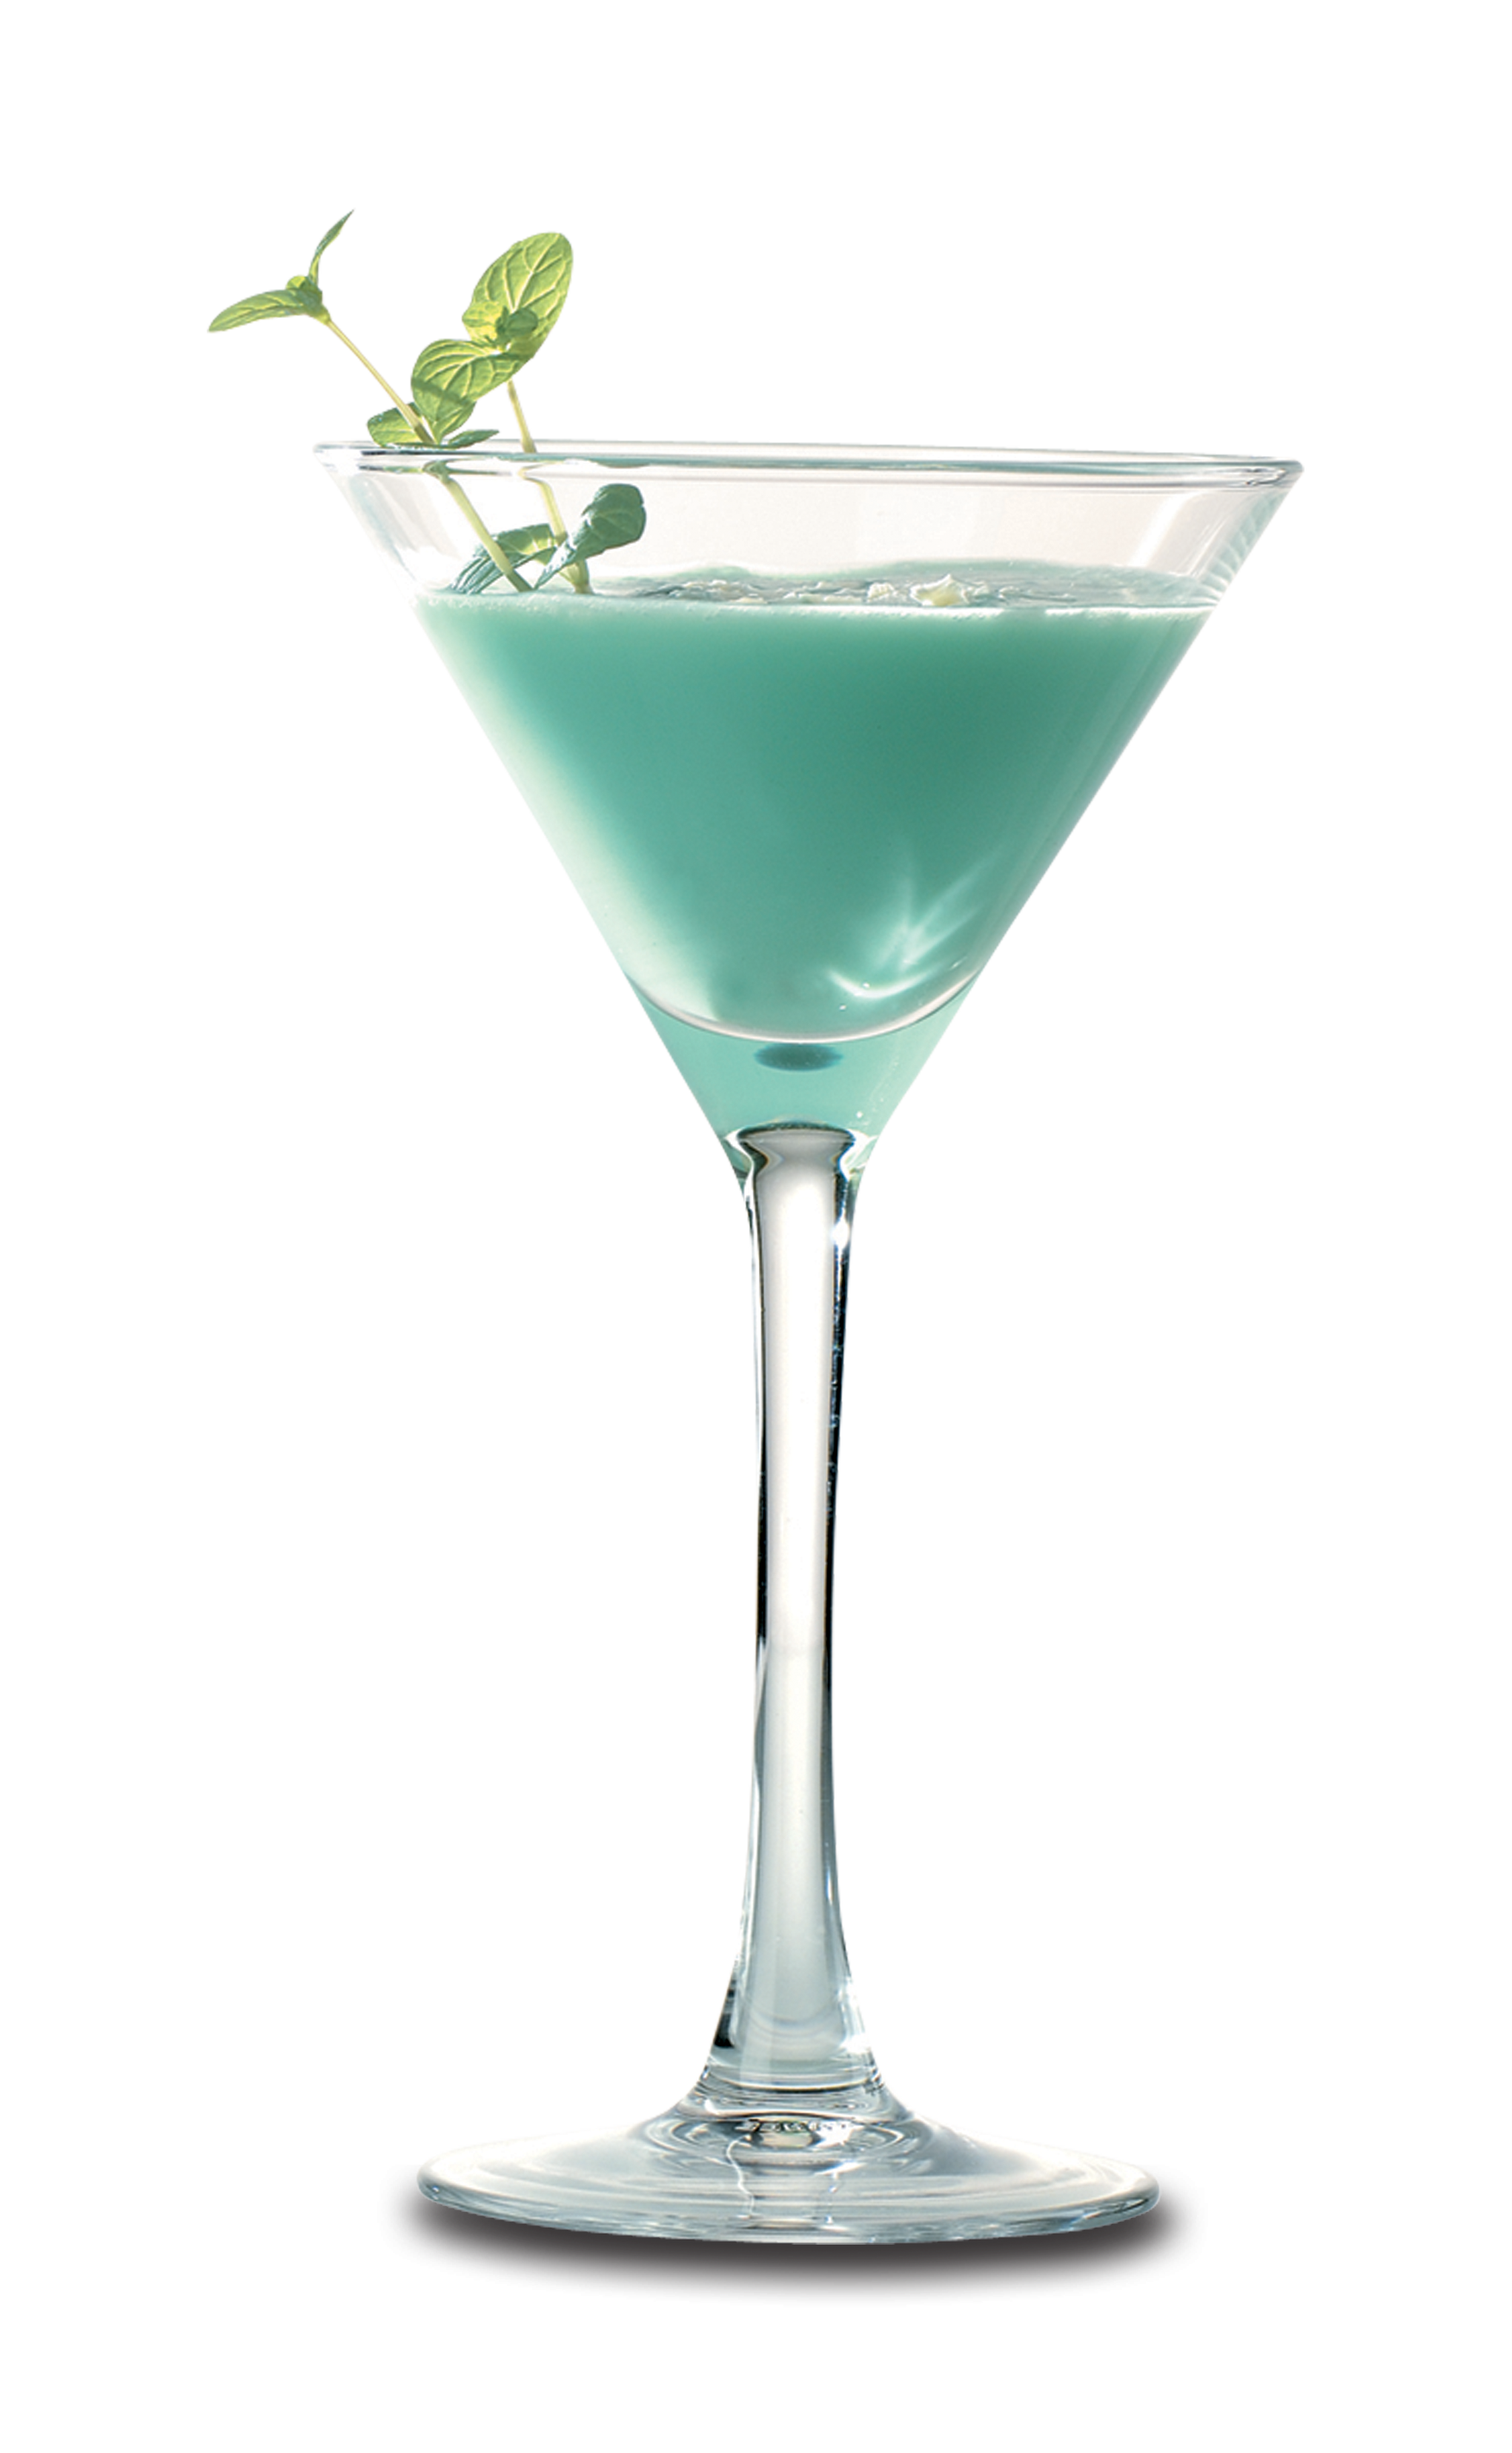 Grasshopper drink png. White chocolate vanilla cream